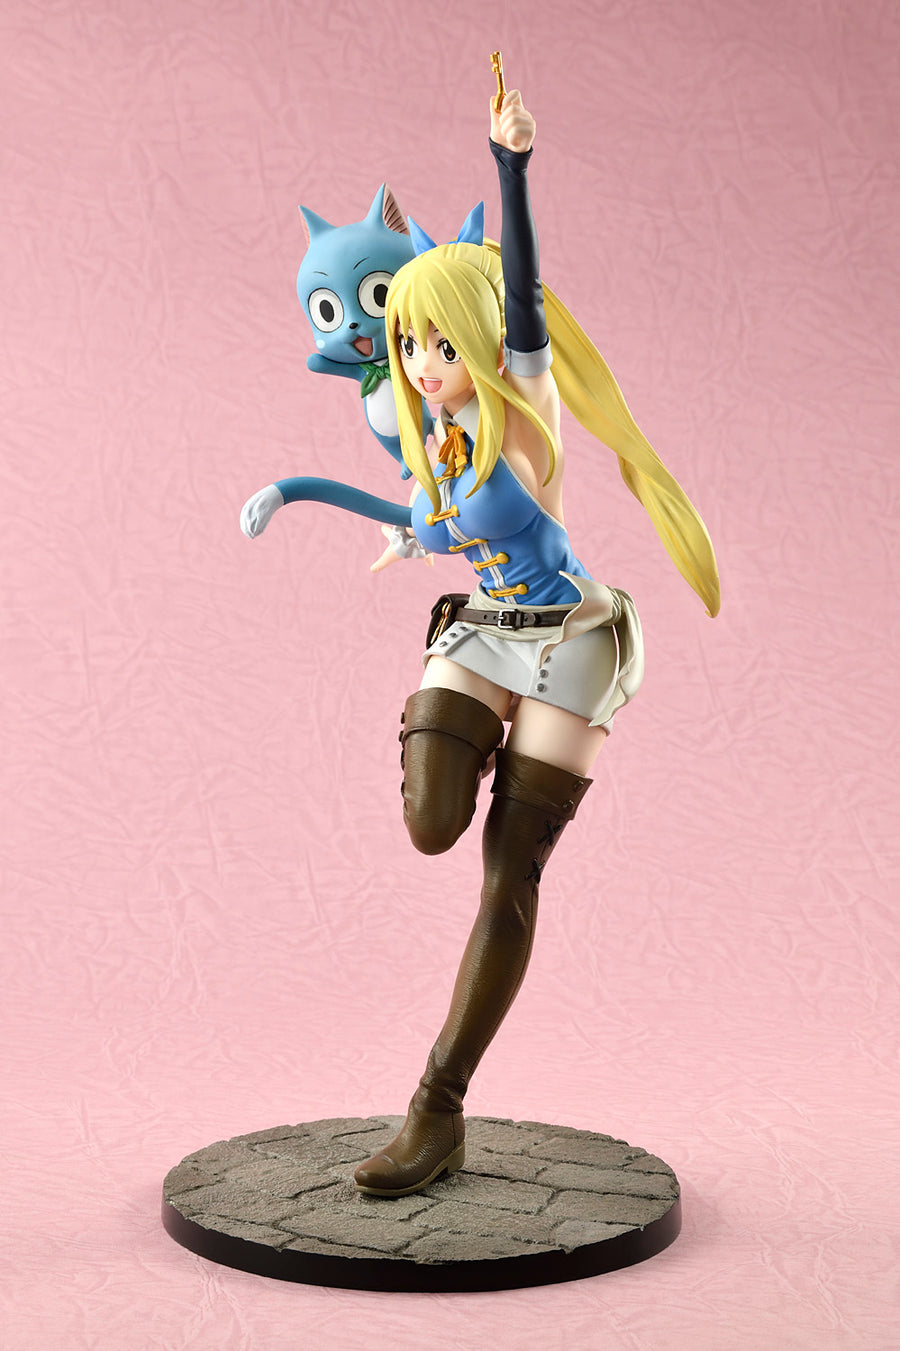 FAIRY TAIL : Final Season Lucy Heartfilia 1/8 Scale Figure